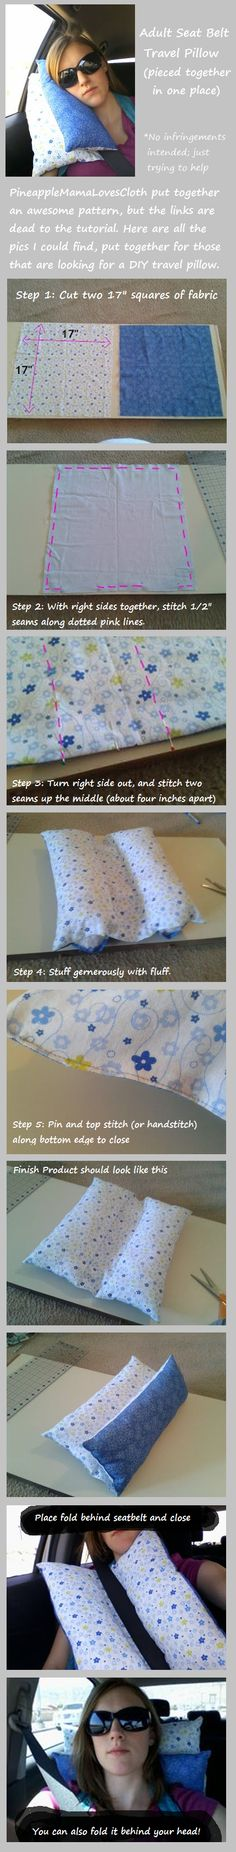 DIY Adult Seat Belt Travel Pillow Tutorial (by Pineapple Mama) | Easy instructions for car seatbelt pillow